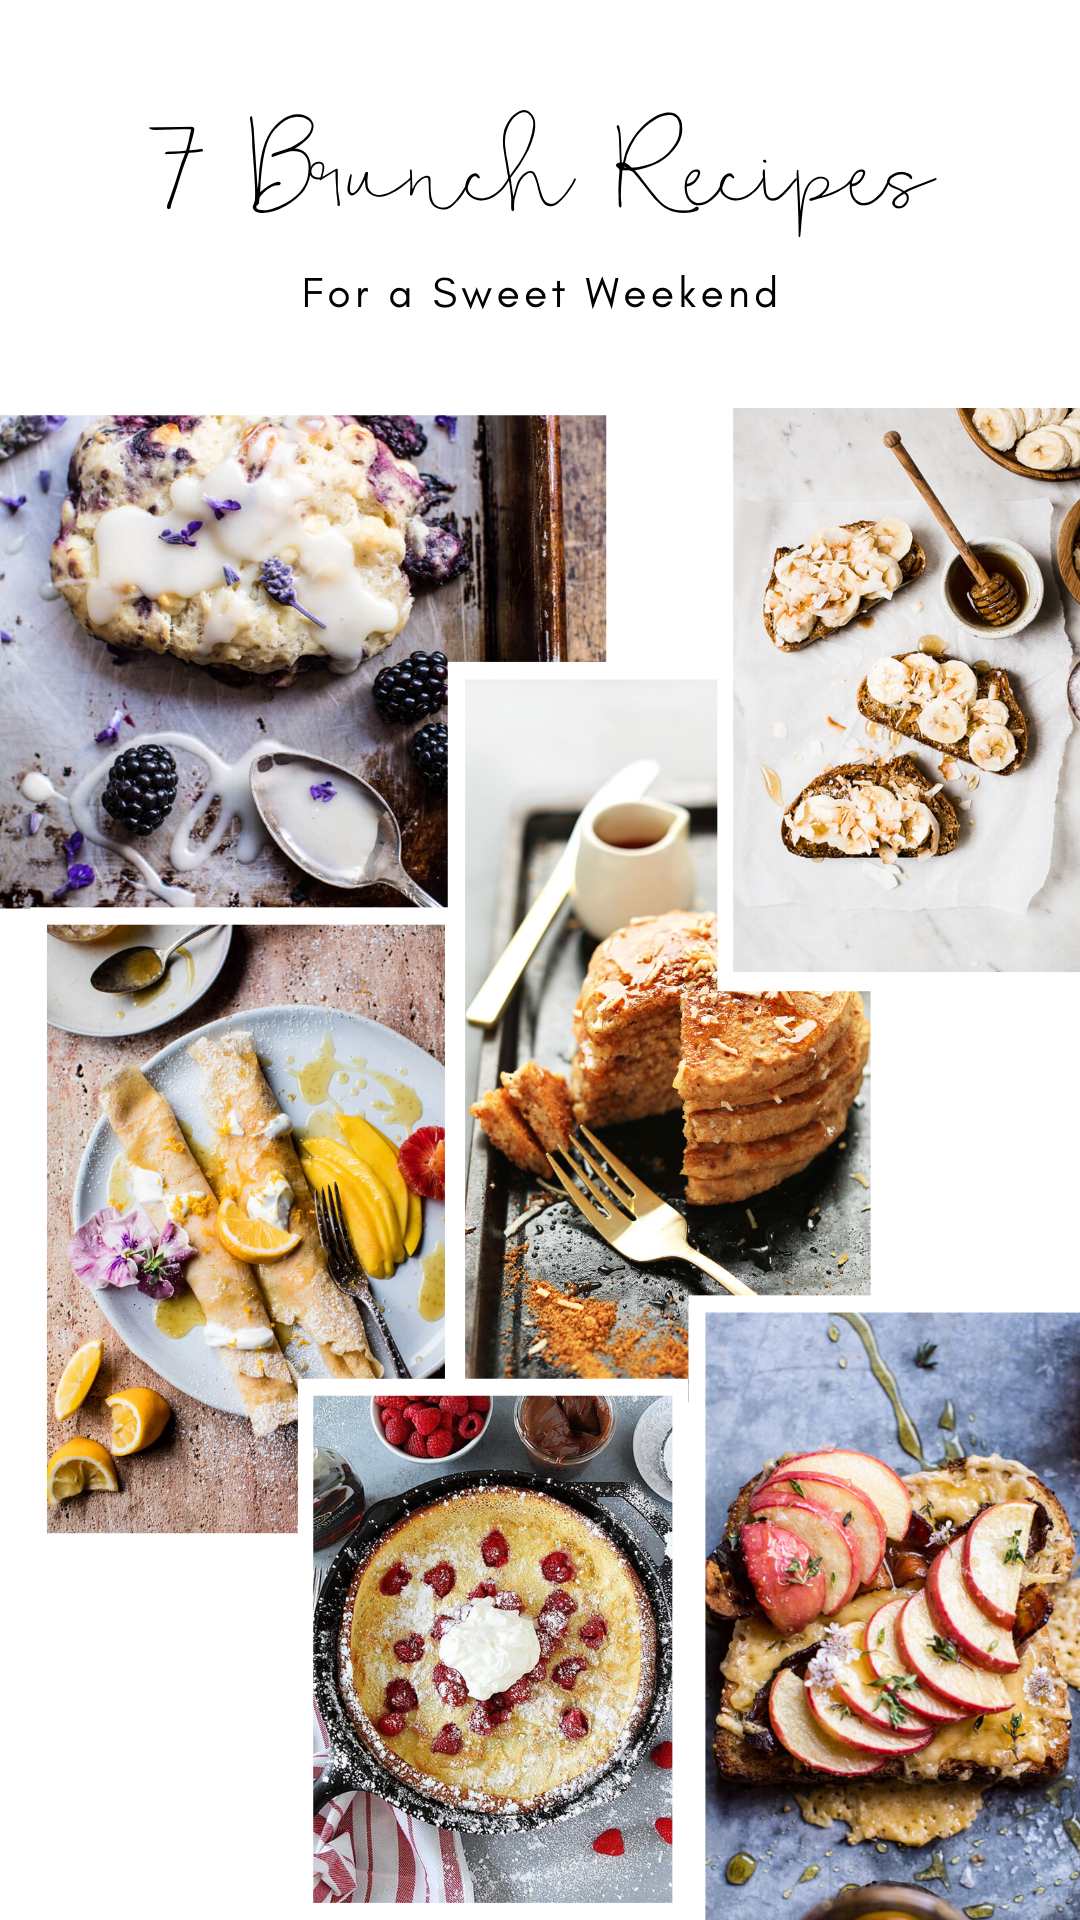 Craving something sweet this weekend? These 7 brunch recipes are all perfectly sweet and utterly delicious! | glitterinc.com | @glitterinc